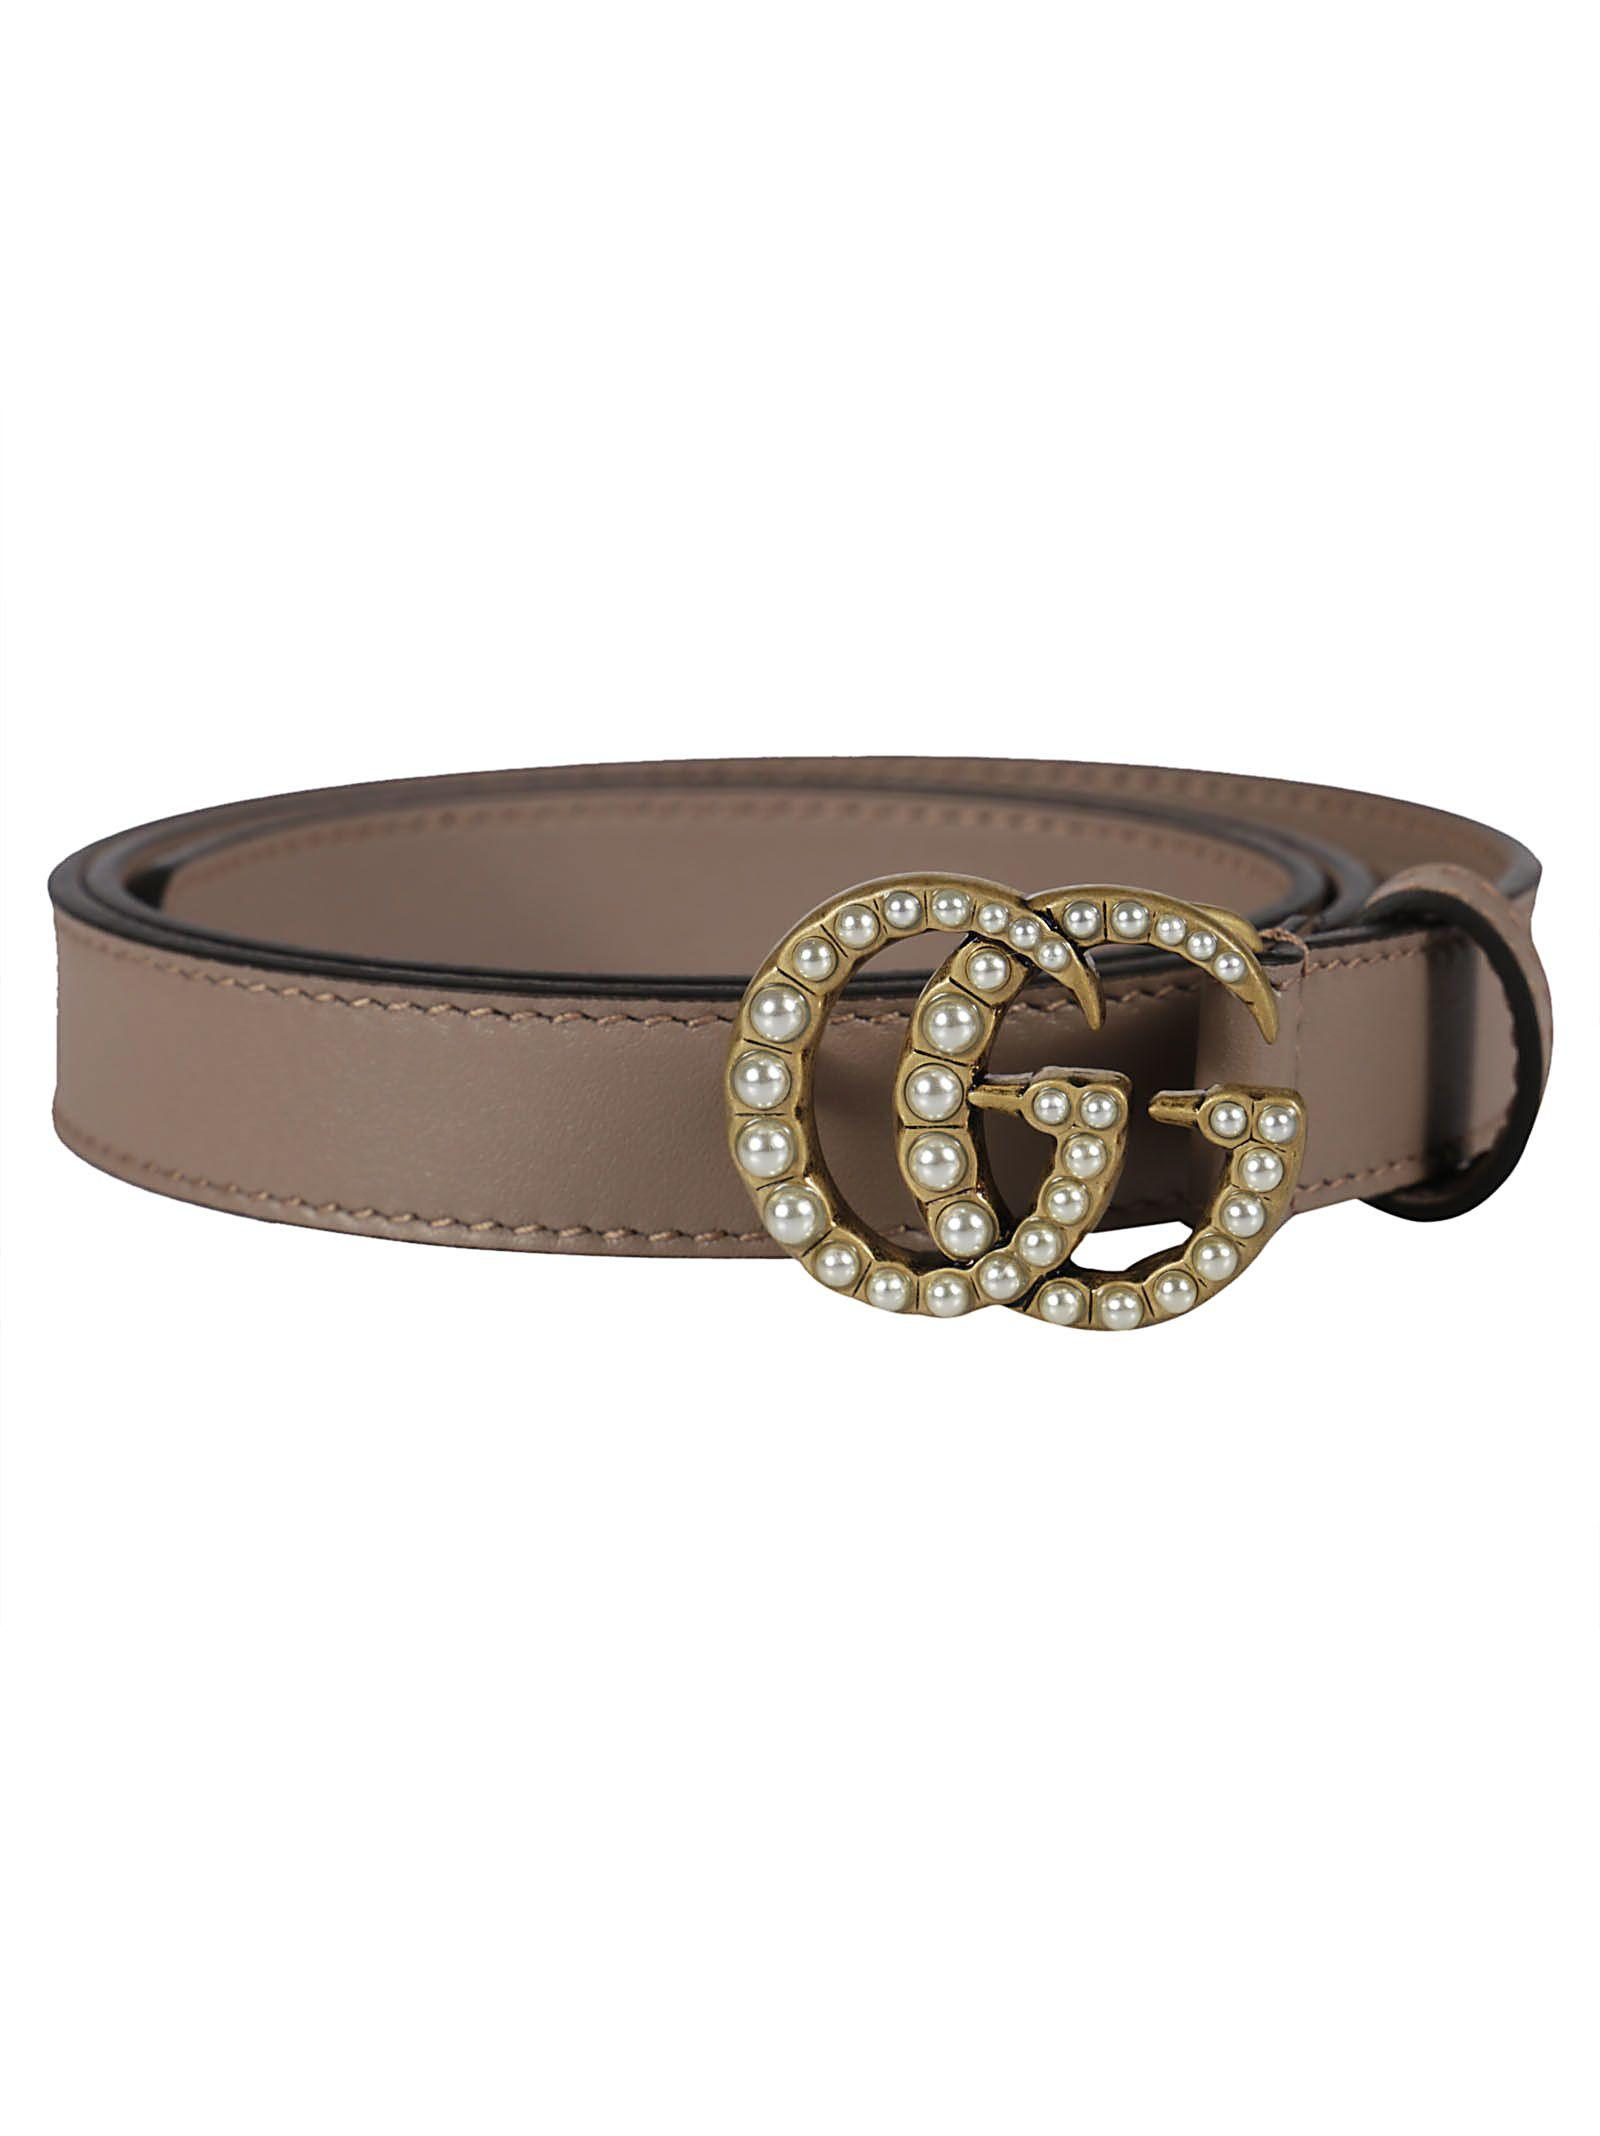 0dc61acbe78 Gucci Pearl Double G Belt In Porcelain Rose